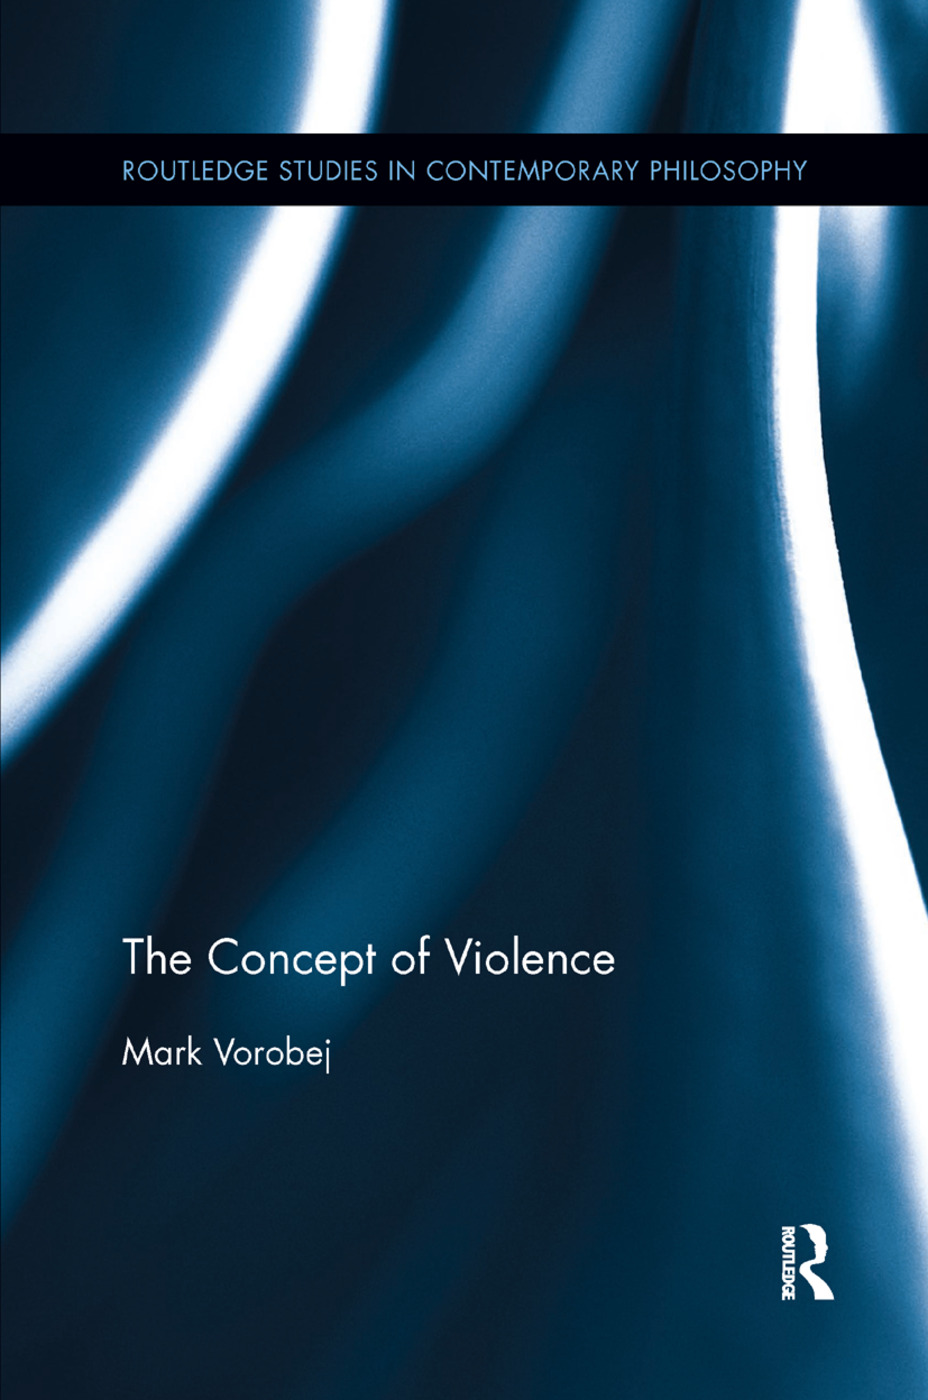 The Concept of Violence